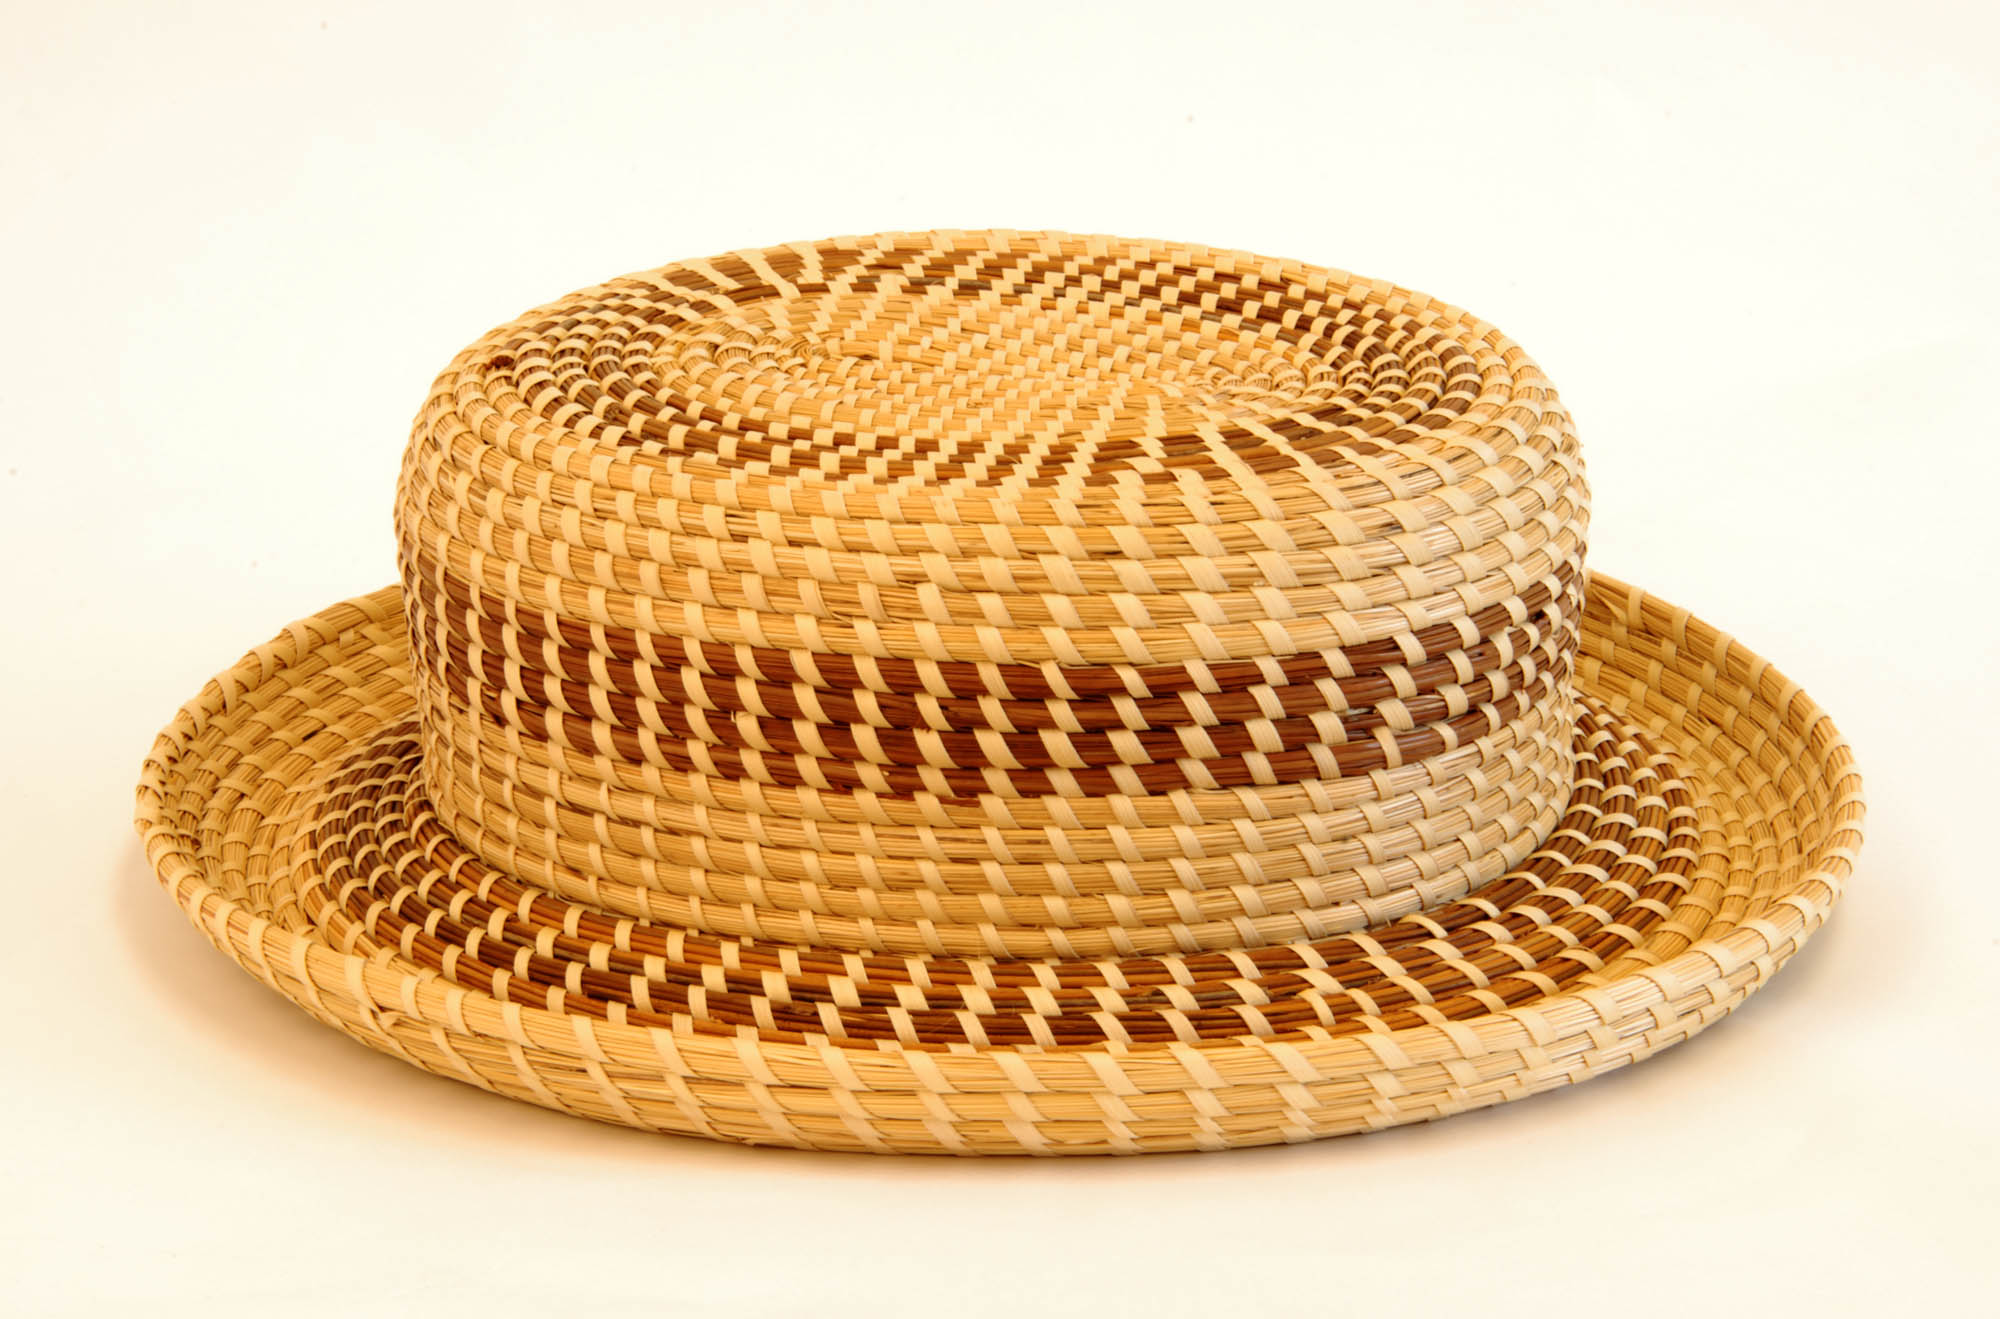 Sweetgrass hat (Contemporary sweetgrass basket)